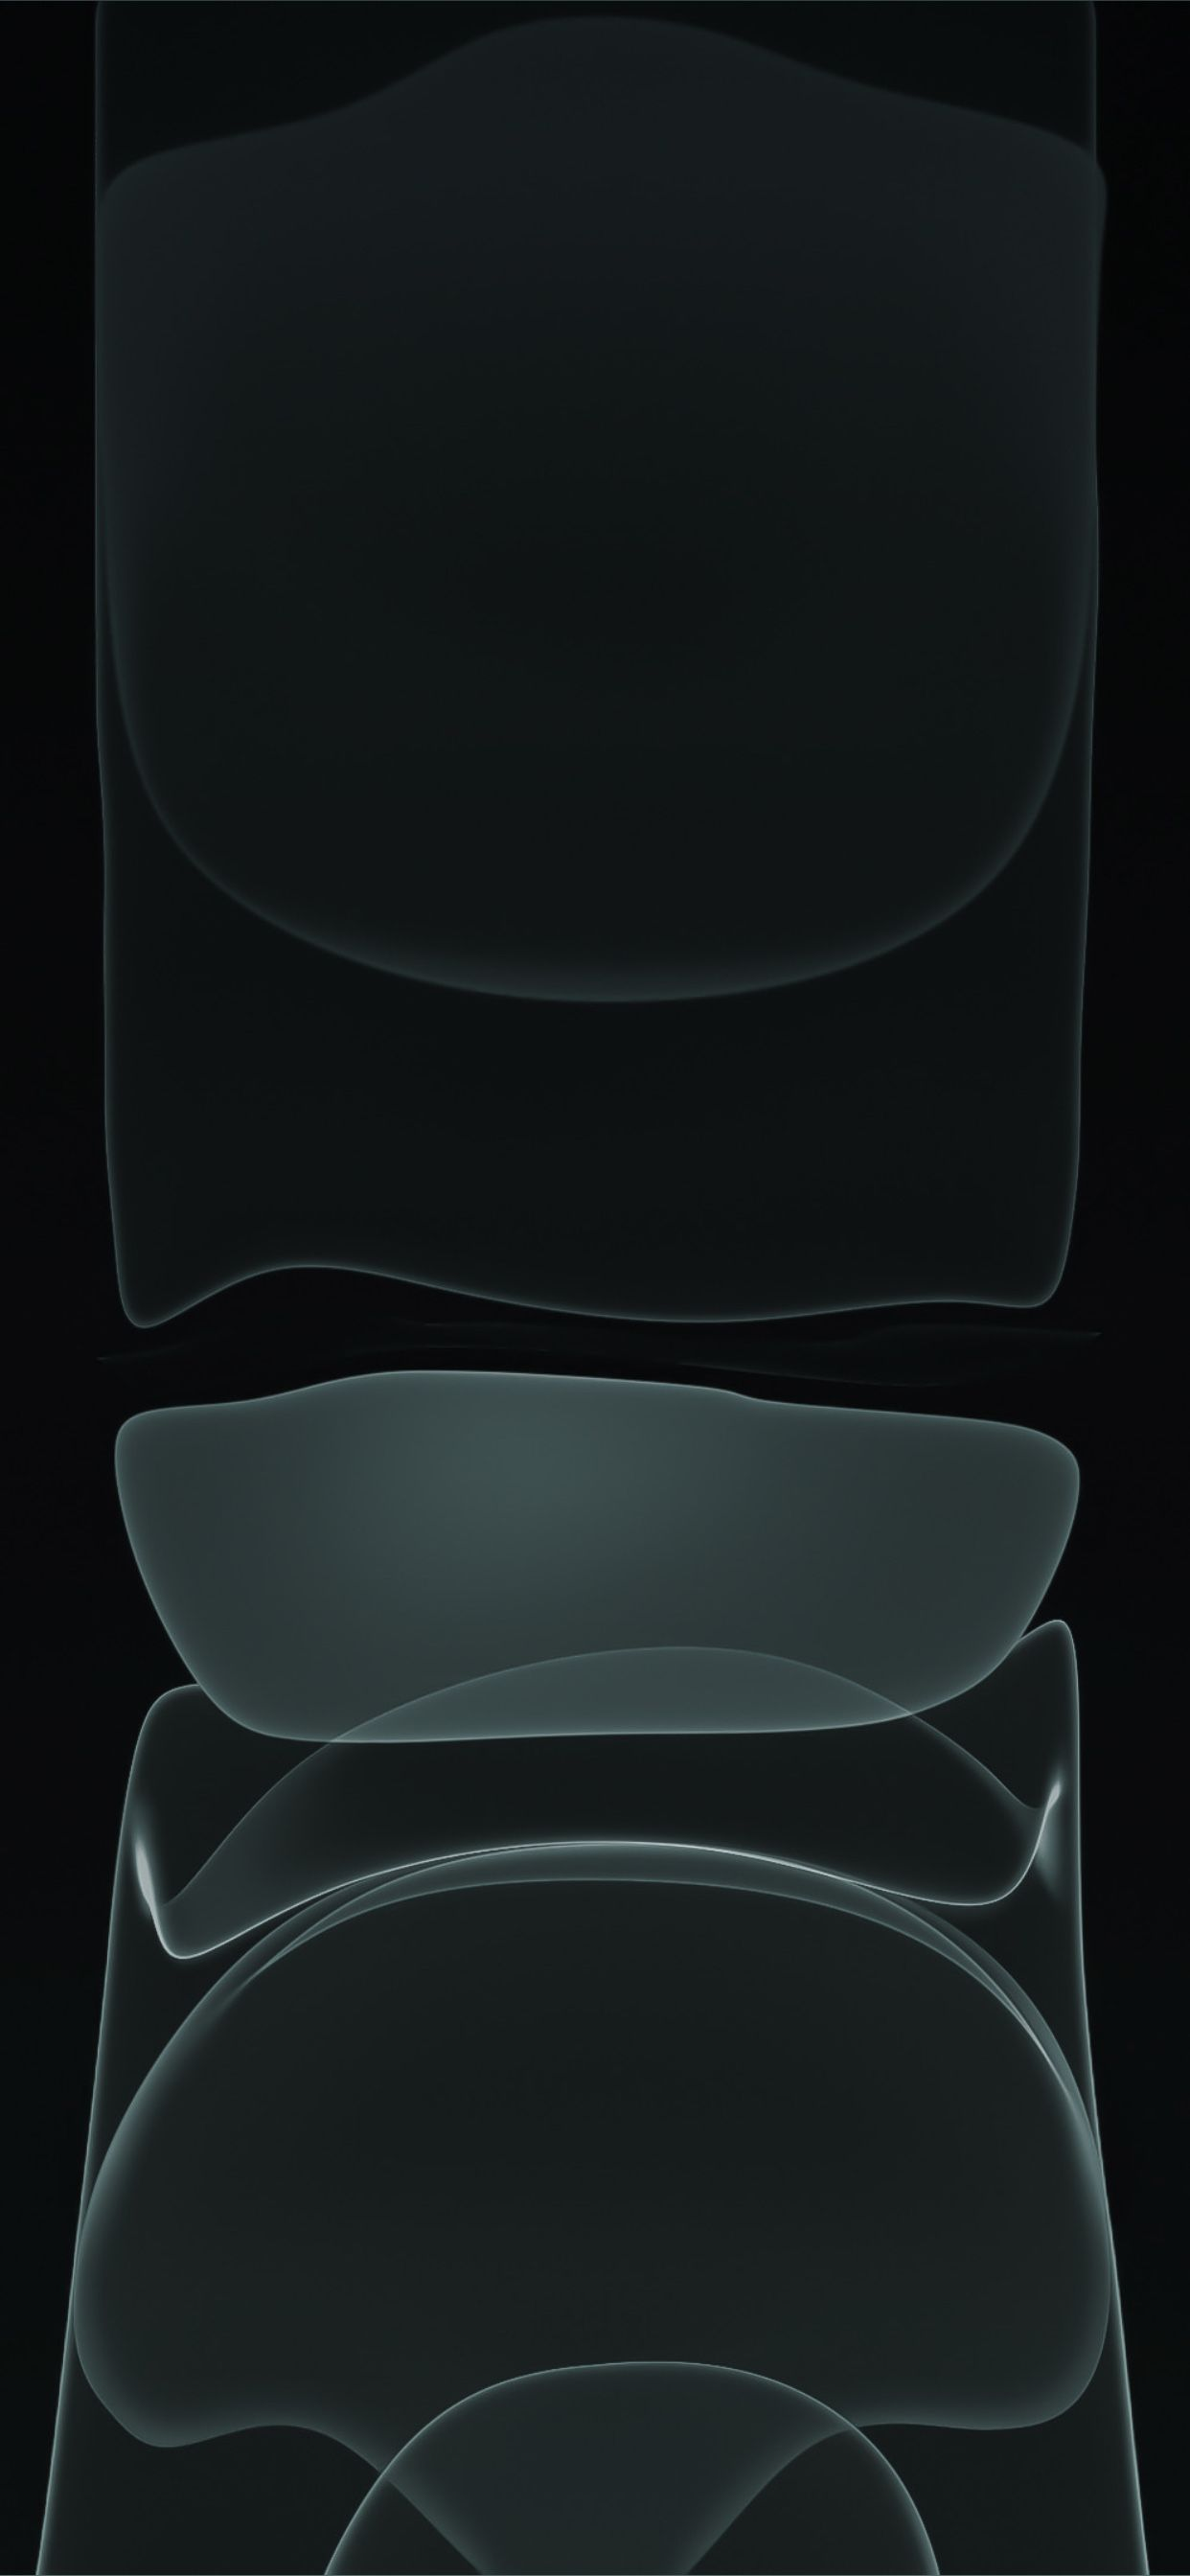 Ios13 Darkmode Clearmode Abstract Apple Iphonewallpaper